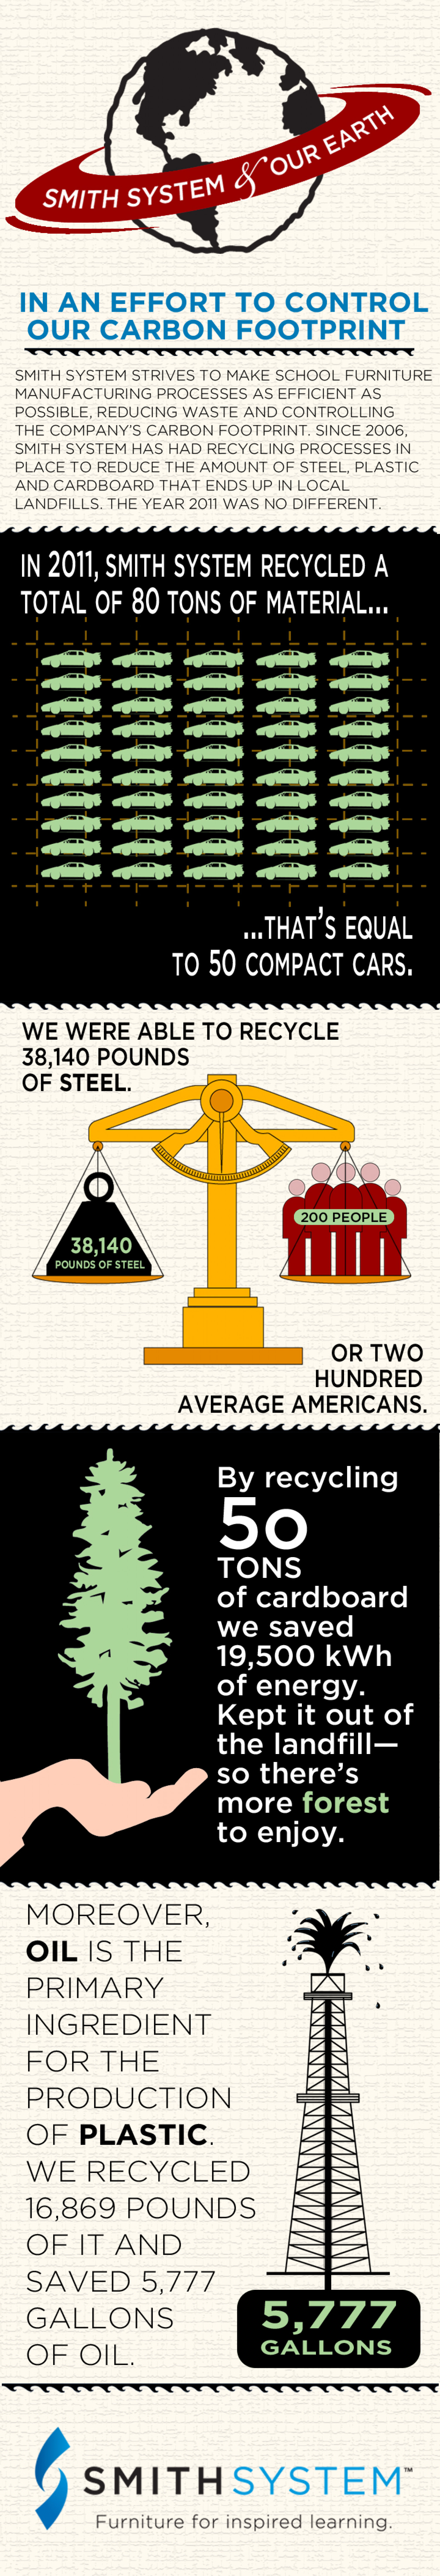 2011 recycling efforts Infographic